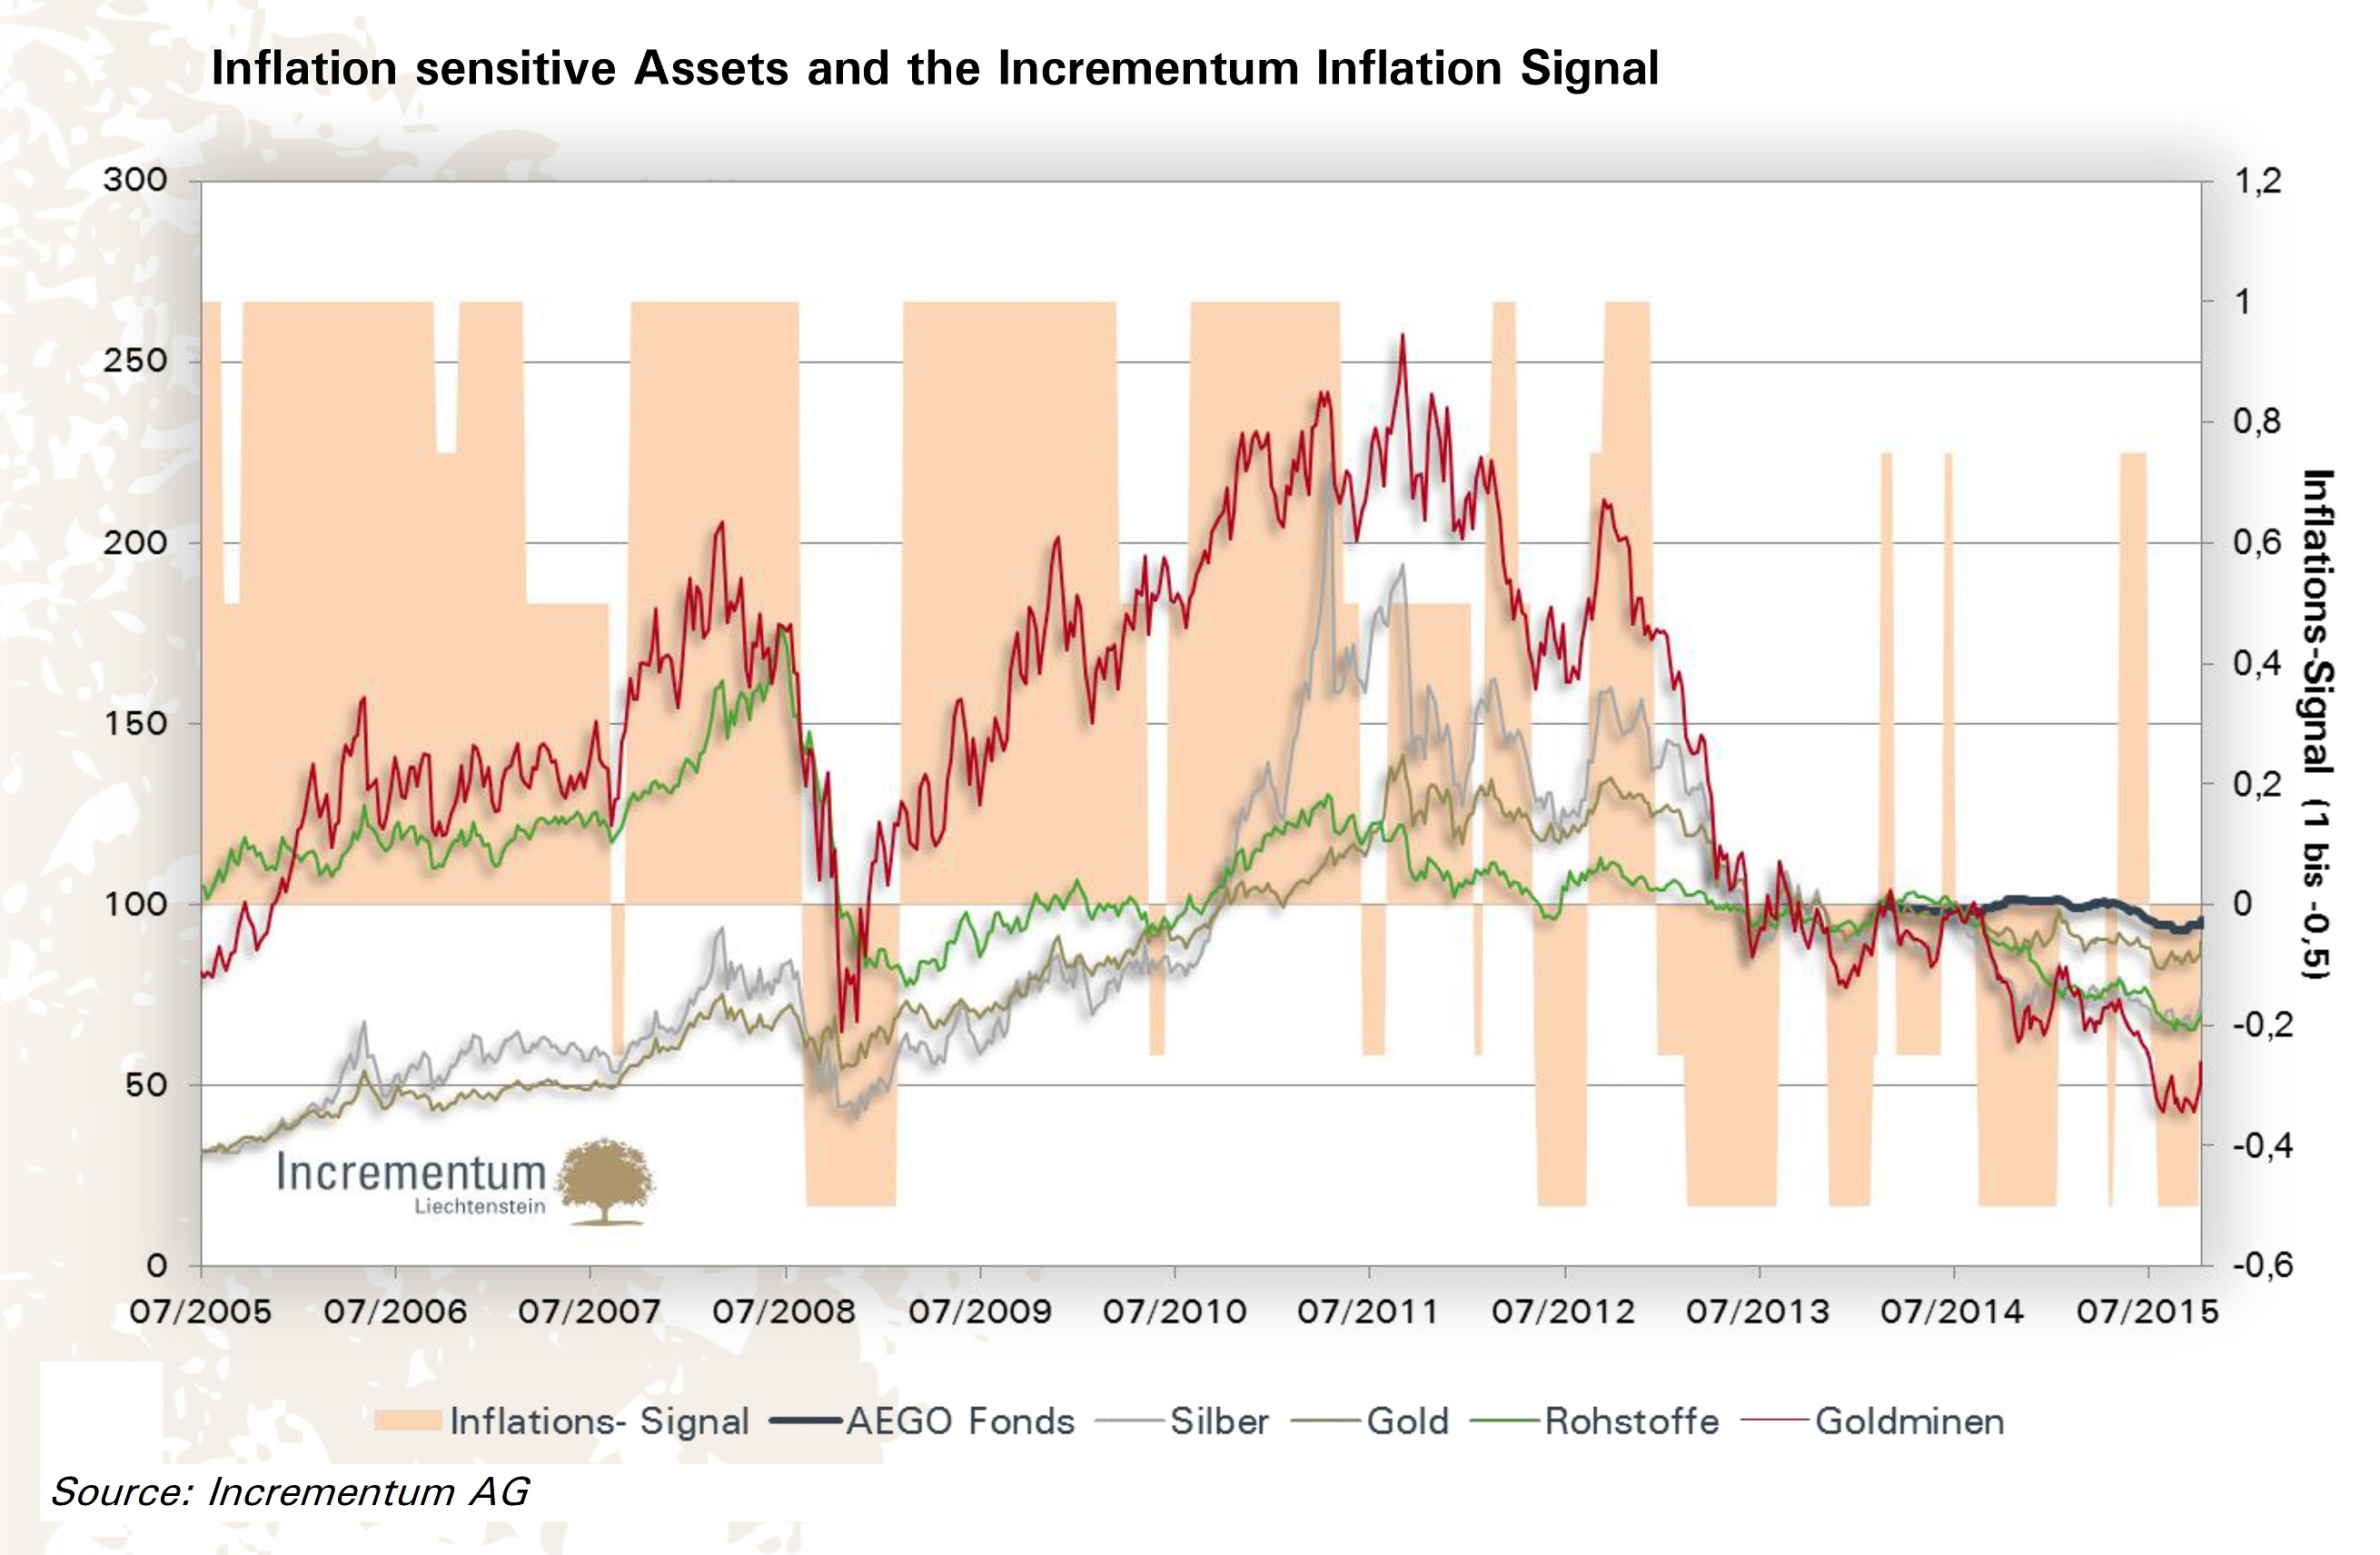 1-Incrementum-Inflation-Signal